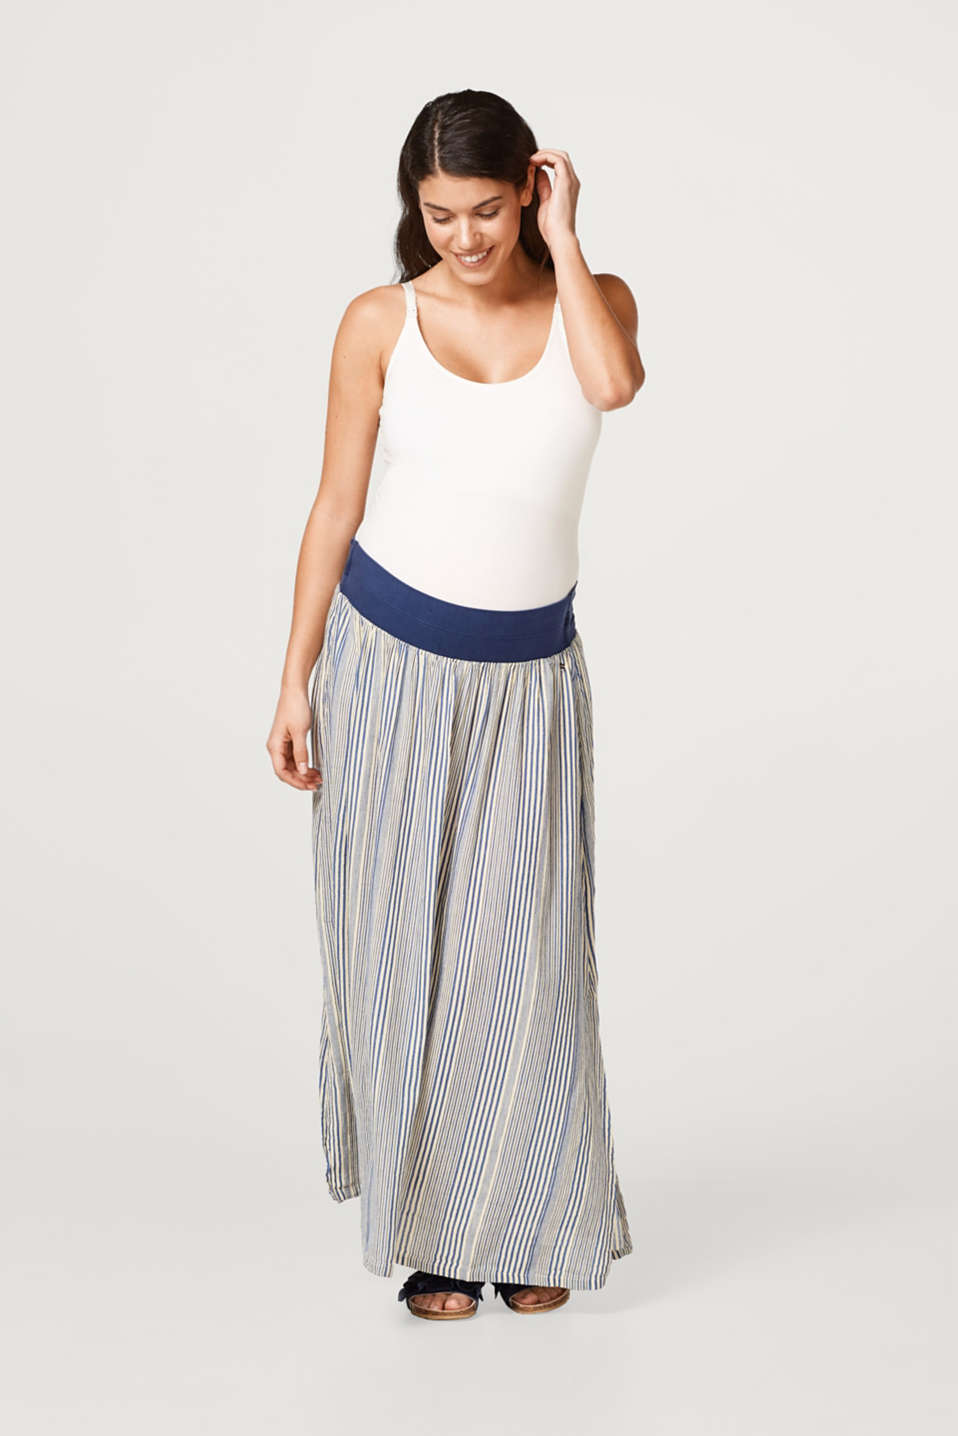 Esprit - Linen blend maxi skirt with an under-bump waistband